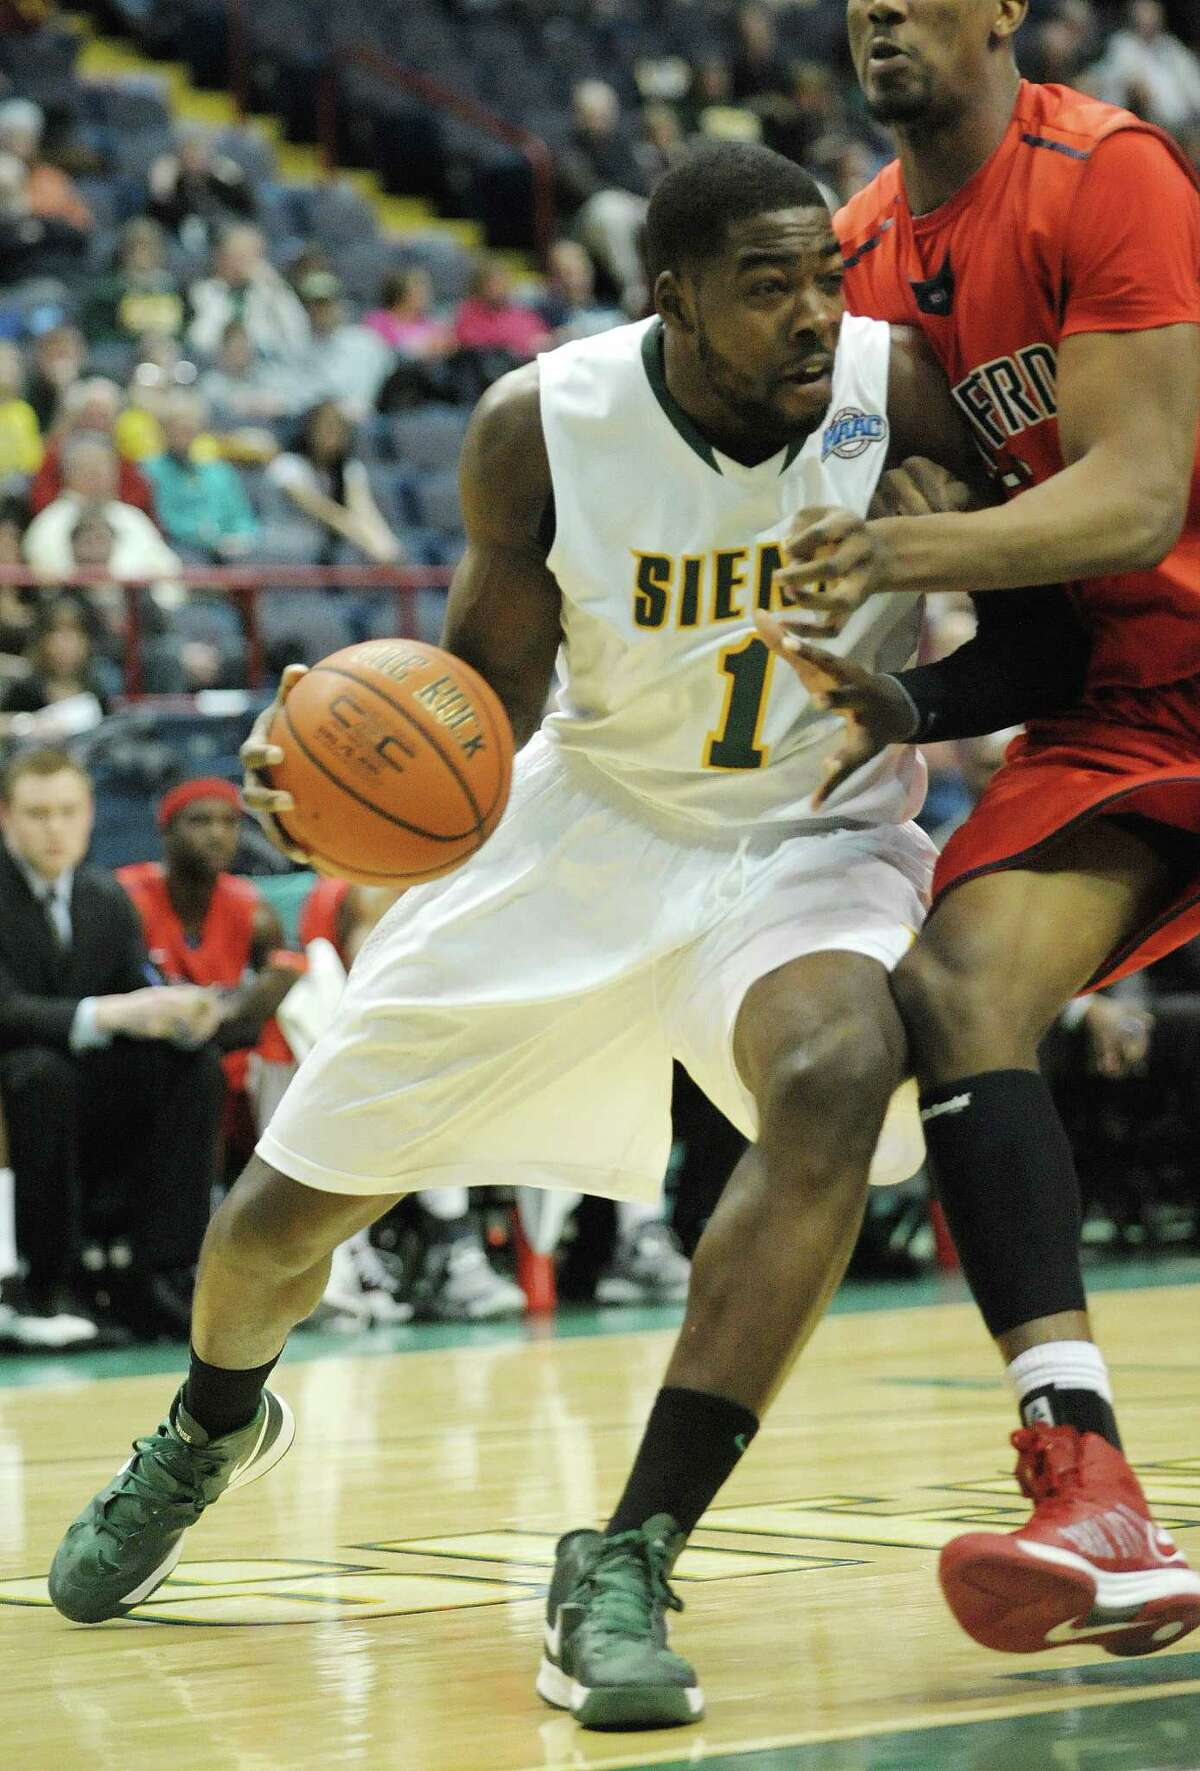 O.D. Anosike of Siena, left, drives towards the basket around a Radford defender during their game at the Times Union Center on Sunday, Feb. 24, 2013 in Albany, NY. (Paul Buckowski / Times Union)